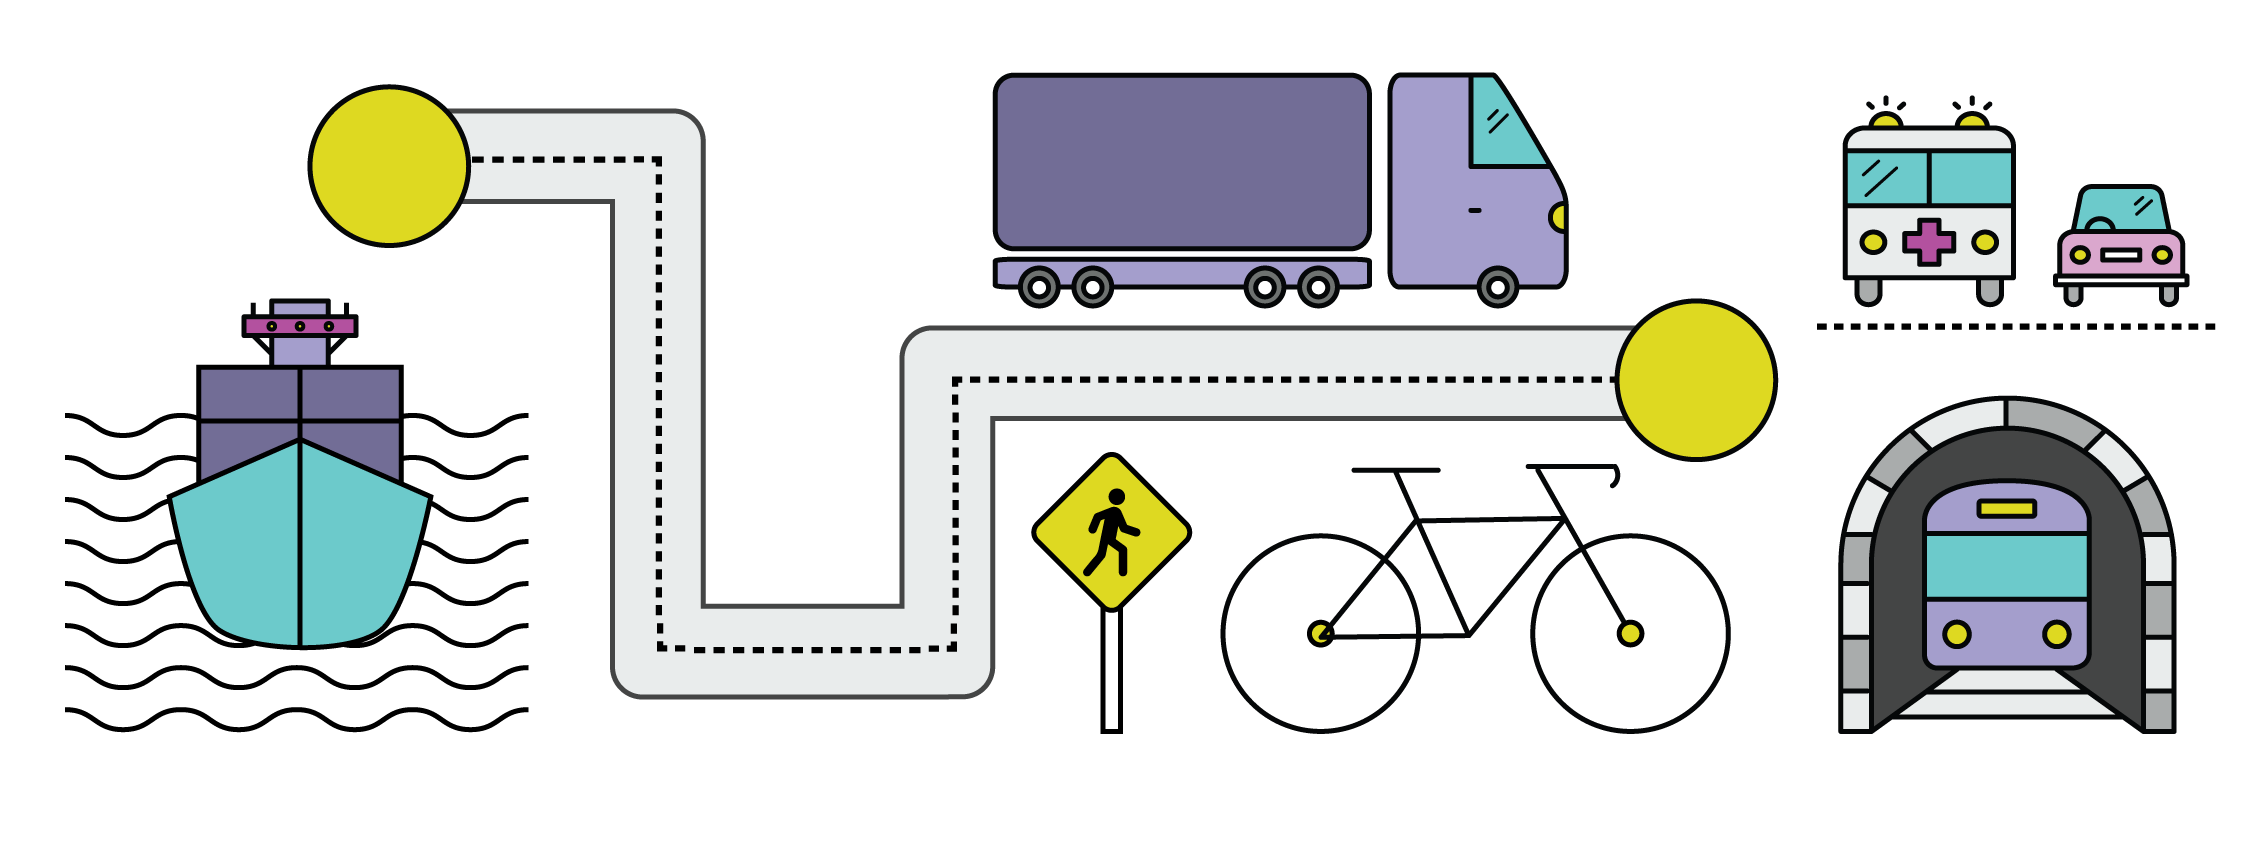 Connected transportation means more than just roadways, it covers all of our transportation system needs, from ship passage to cycling, to emergency vehicles and the light rail.